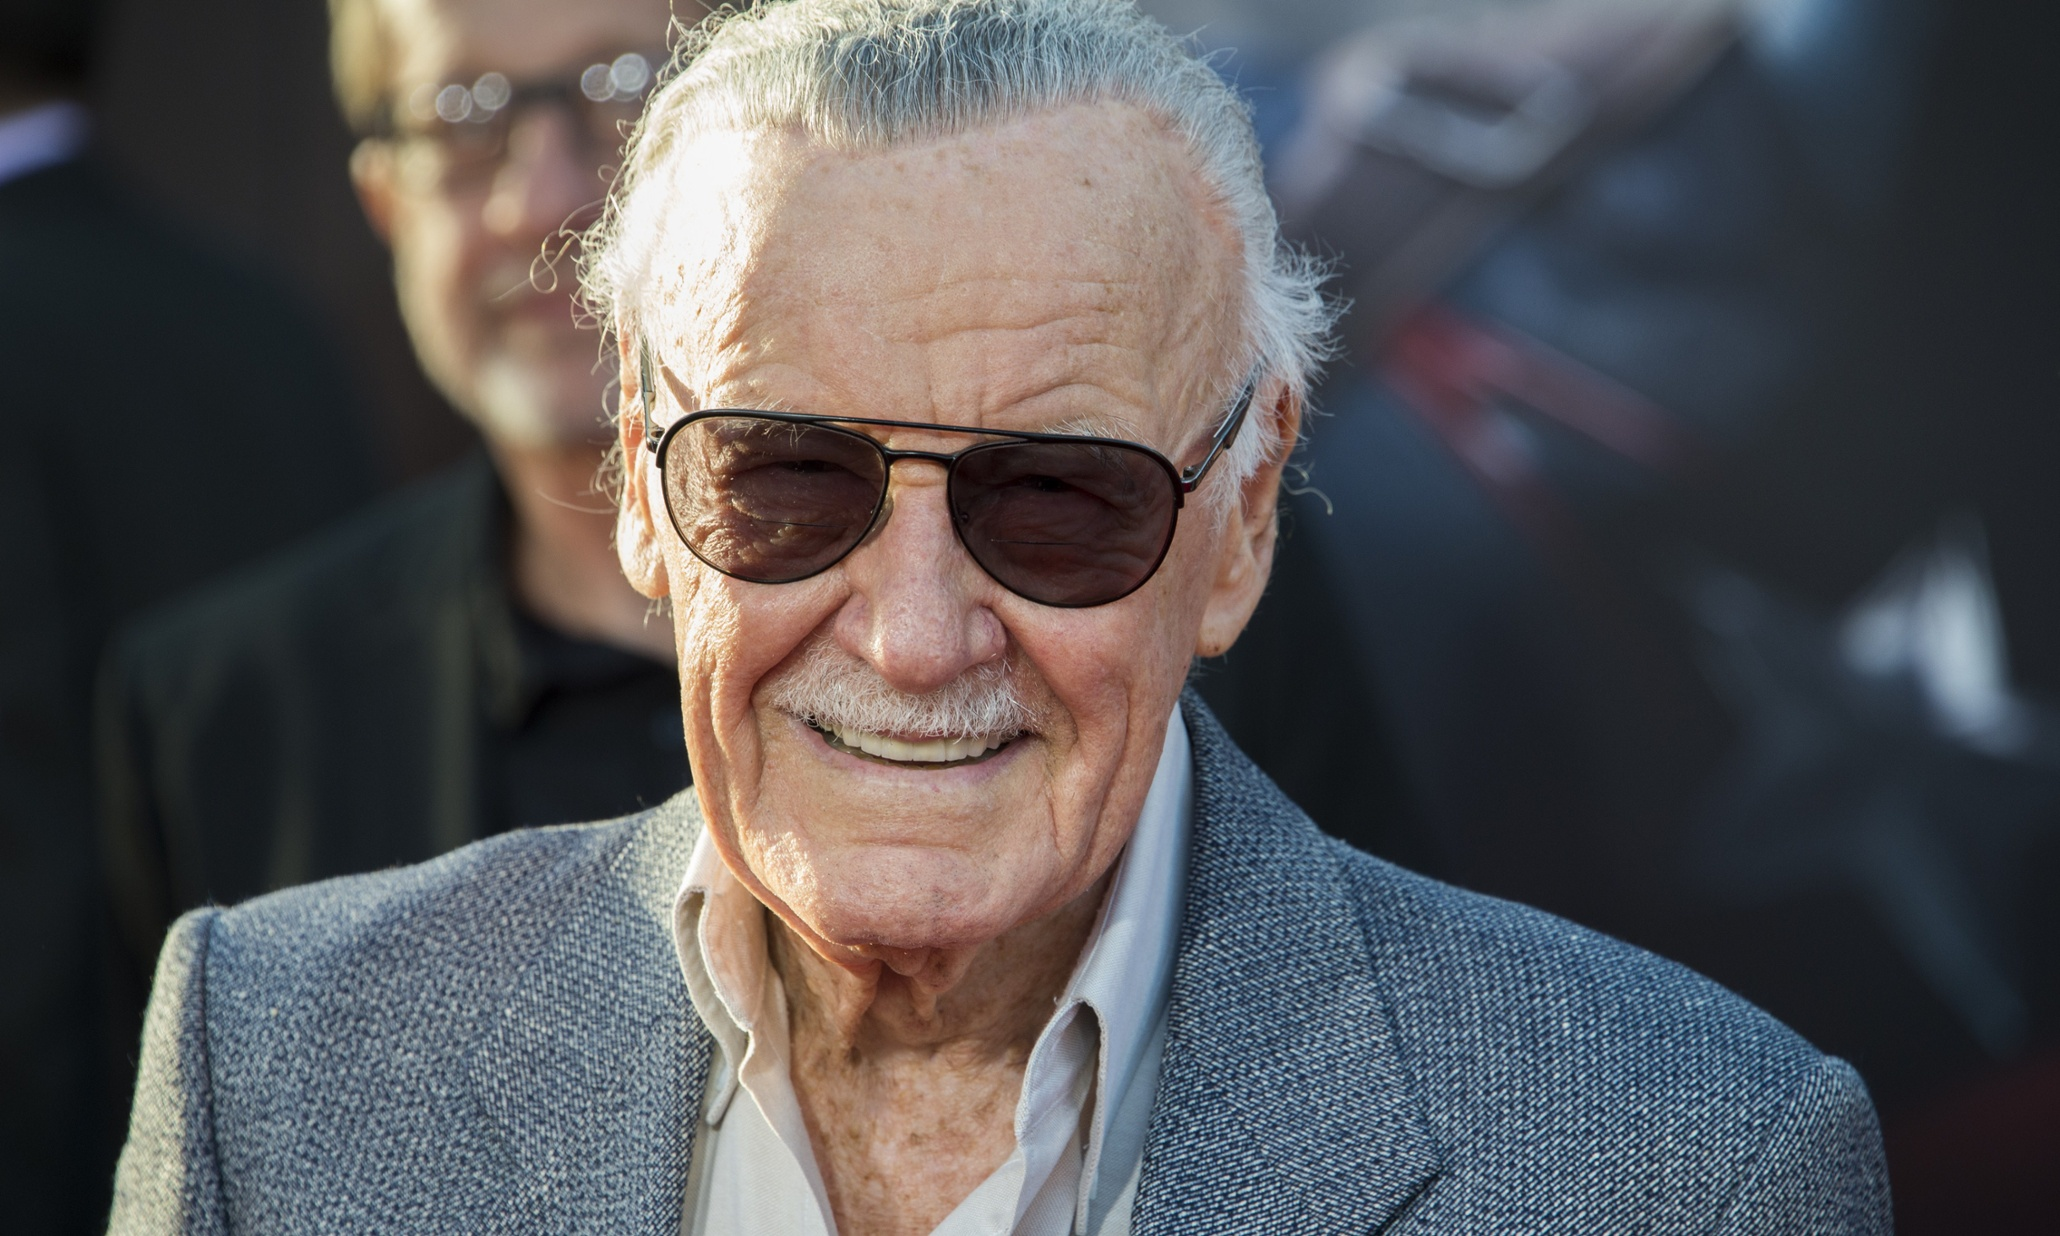 Stan Lee cameo in a DC movie